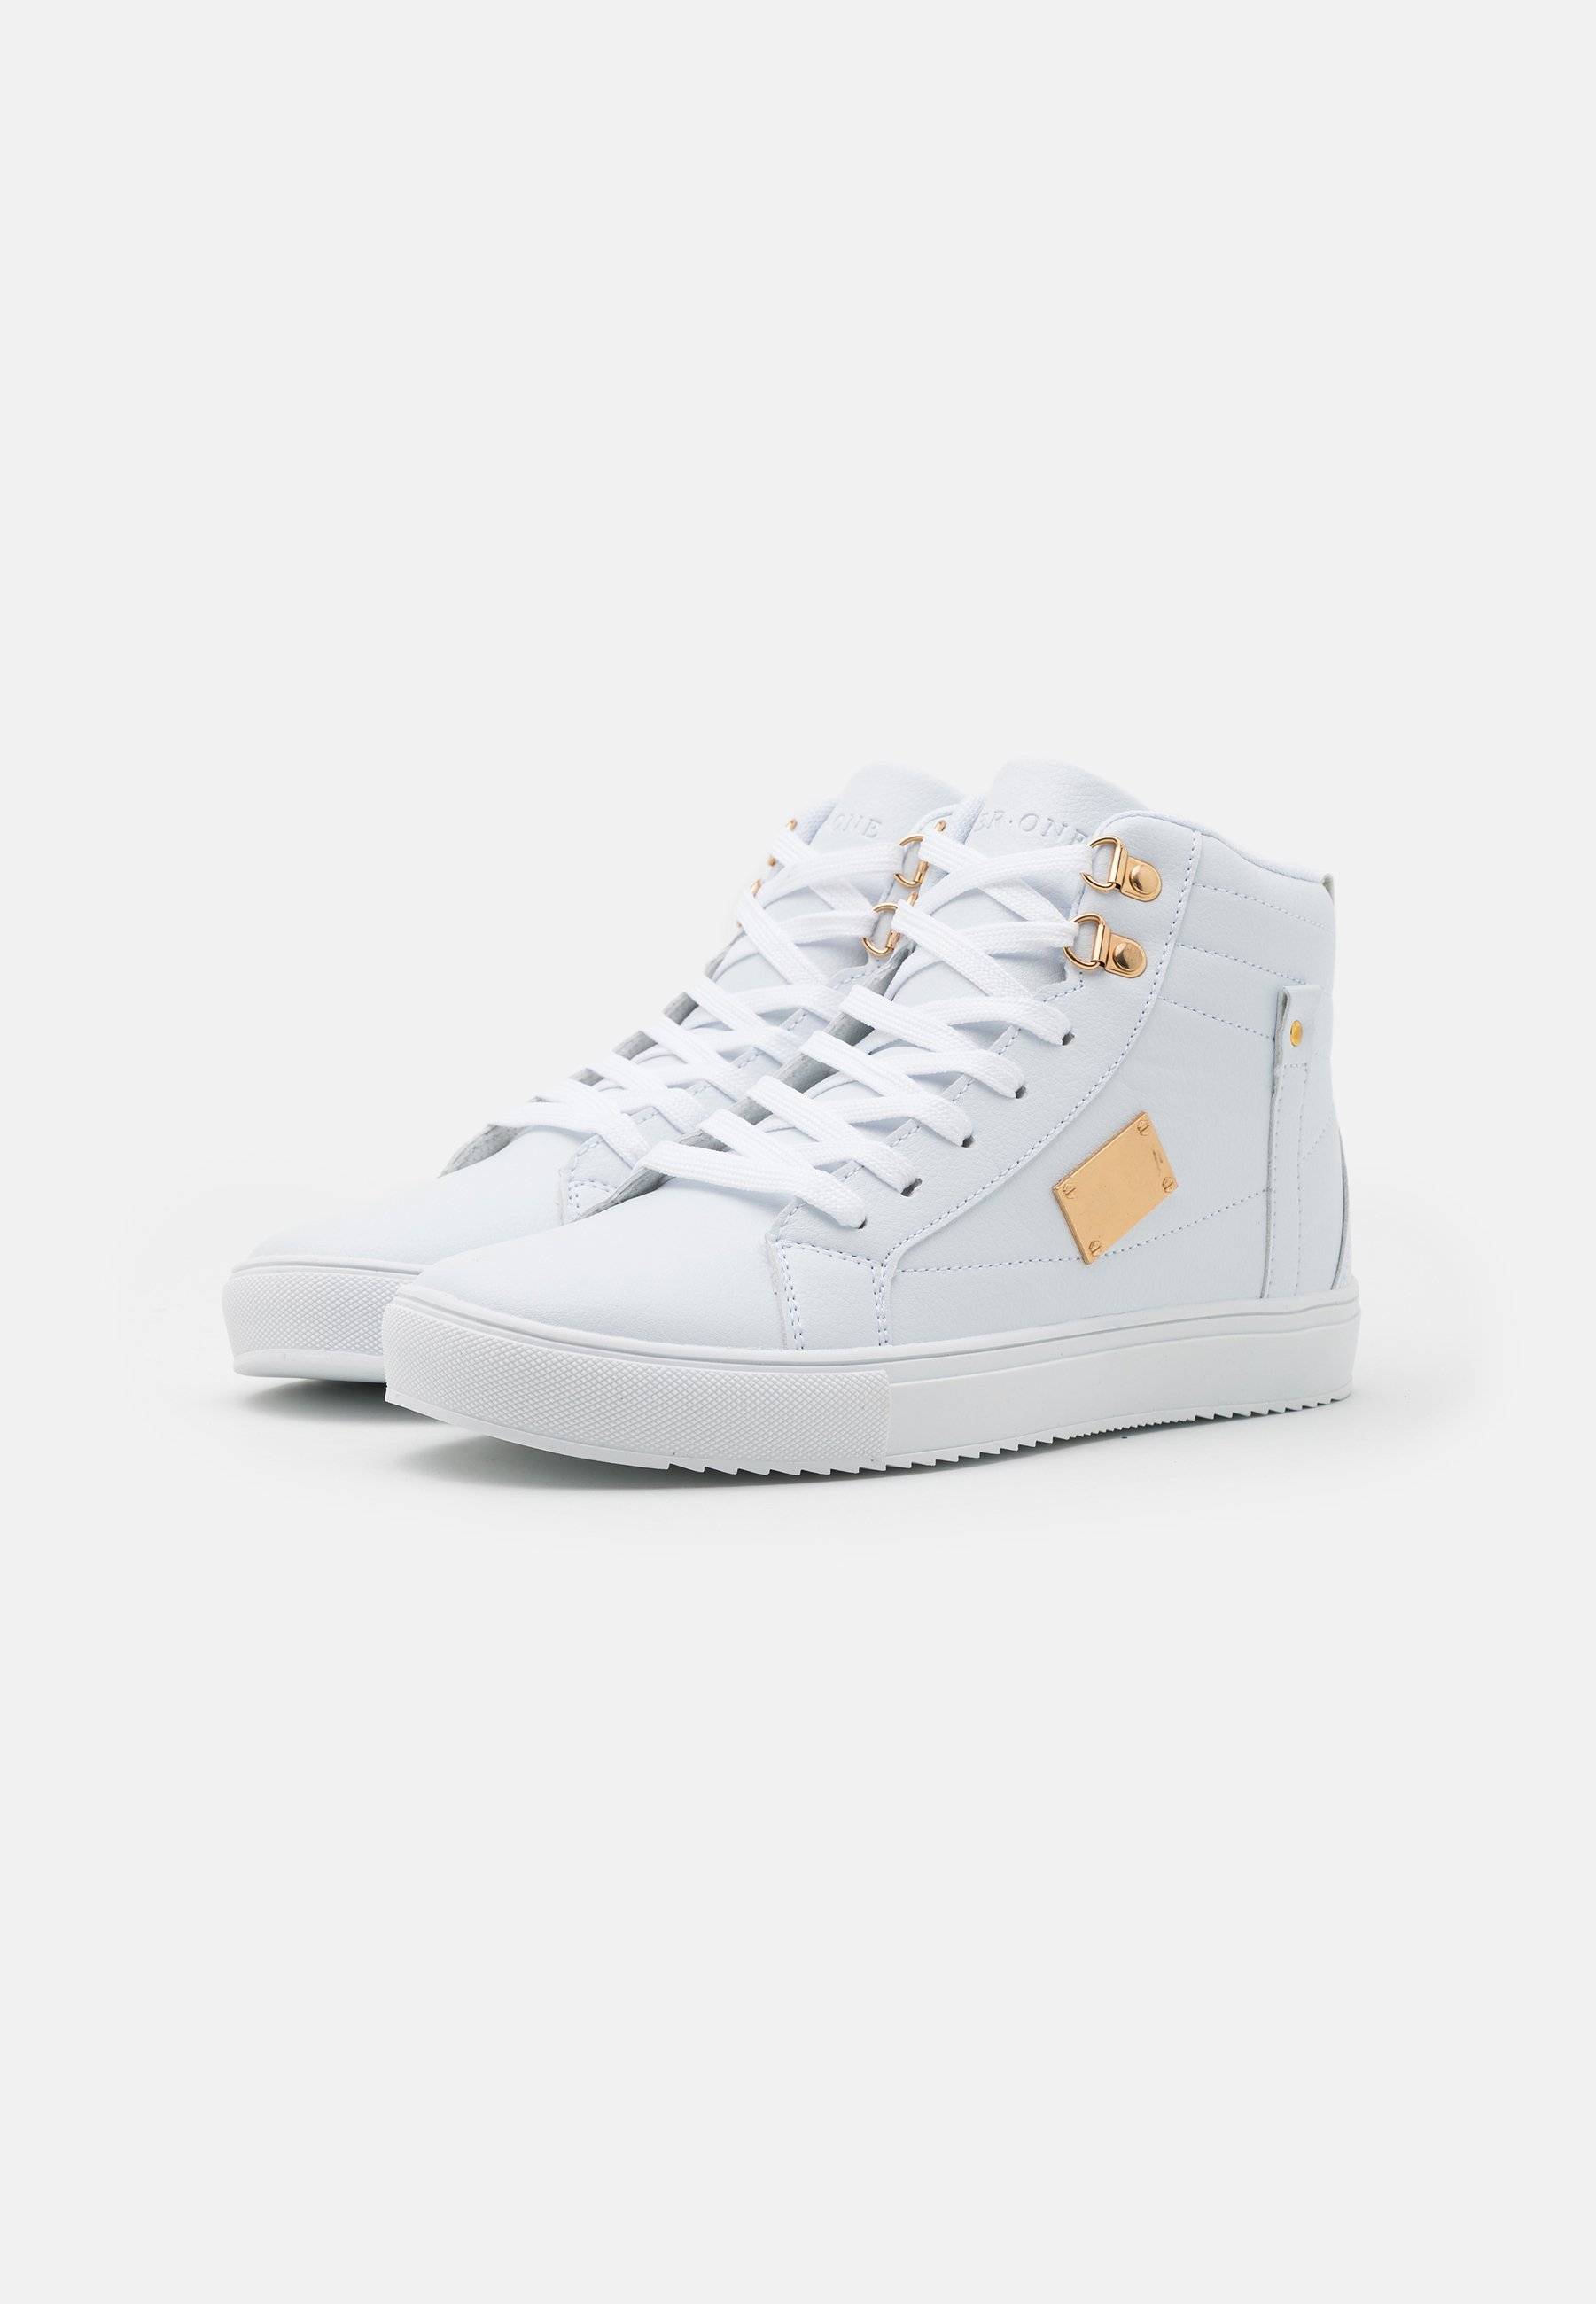 Pier One Sneakers High - White